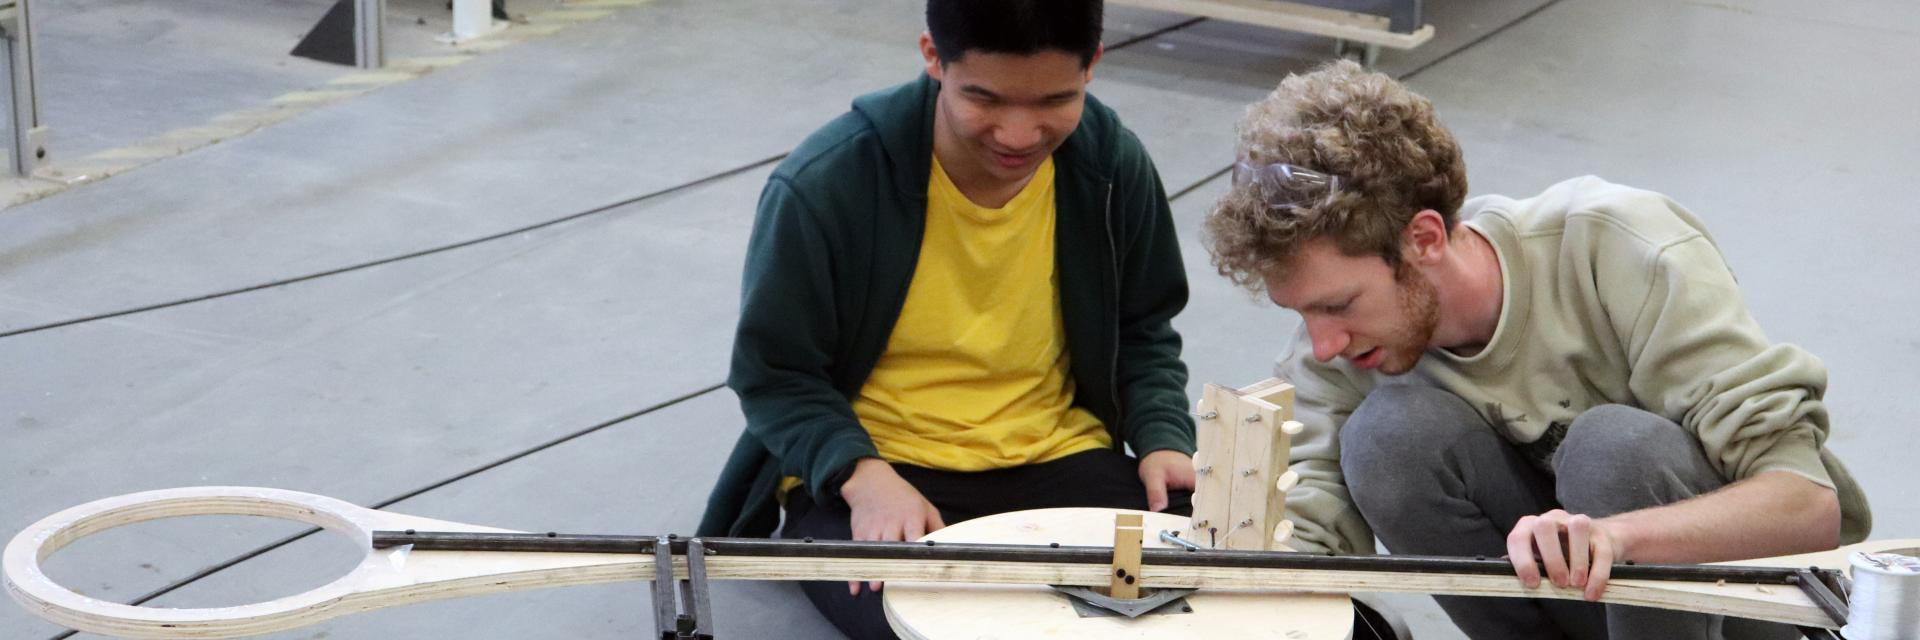 Two Undergrad students working on a Rube Goldberg machine at the Digital Fabrication Lab.